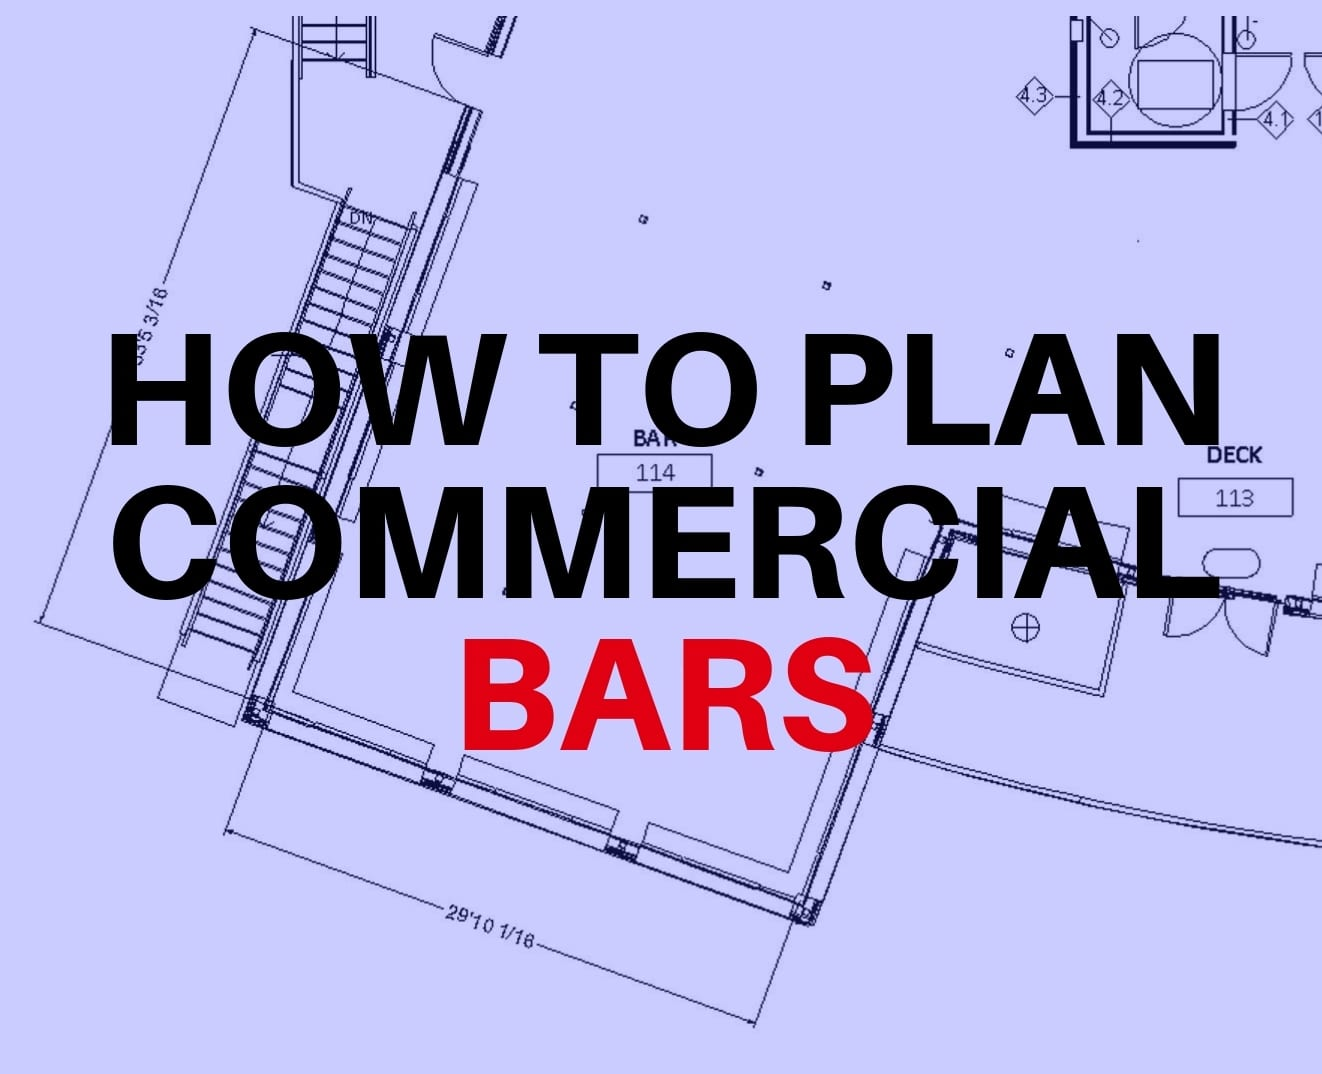 How to plan commercial bars